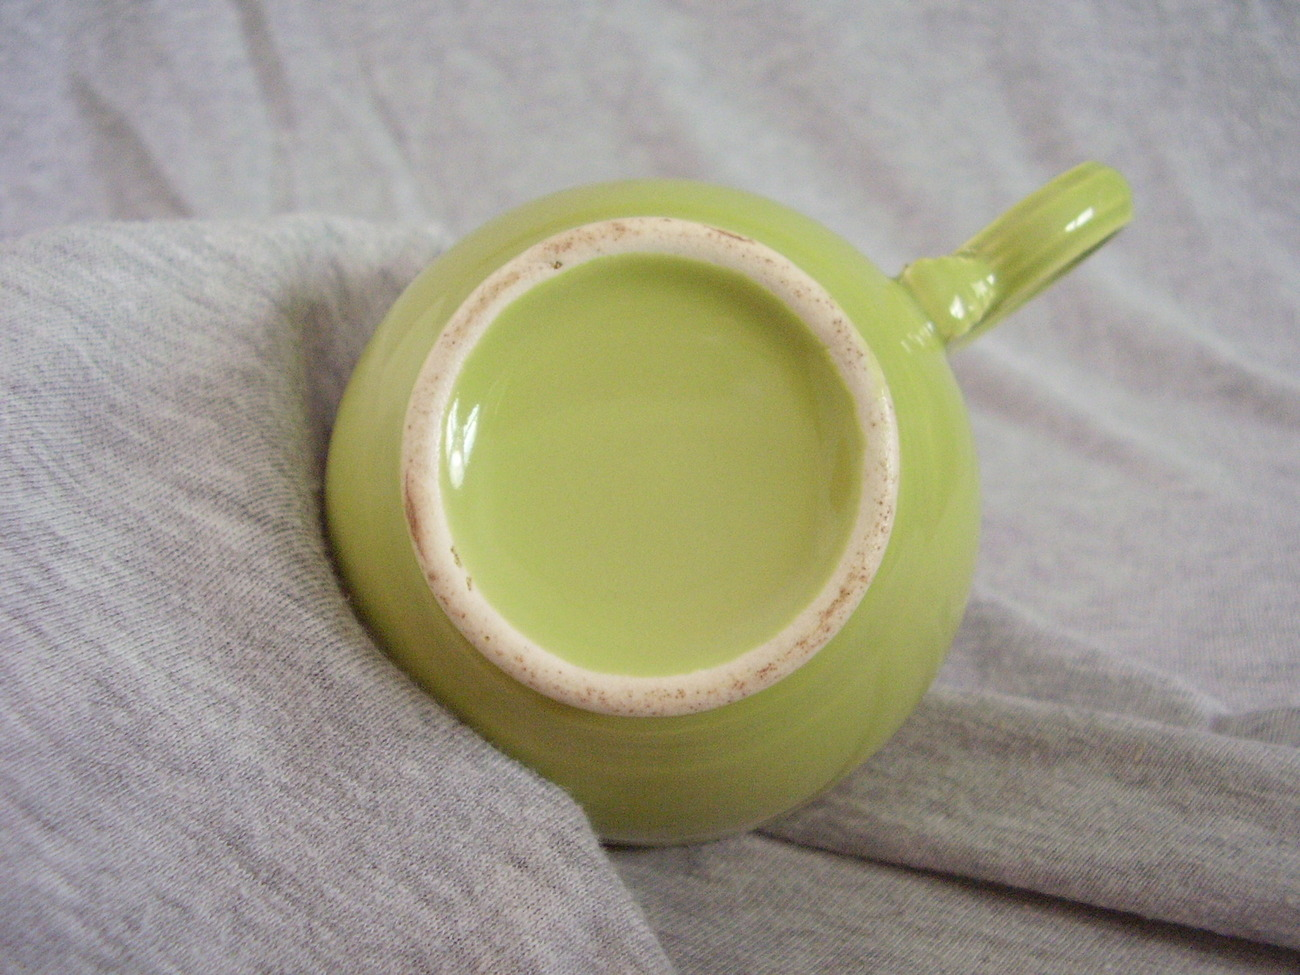 Vintage Fiestaware Chartreuse Ring Handle Teacup Fiesta   A